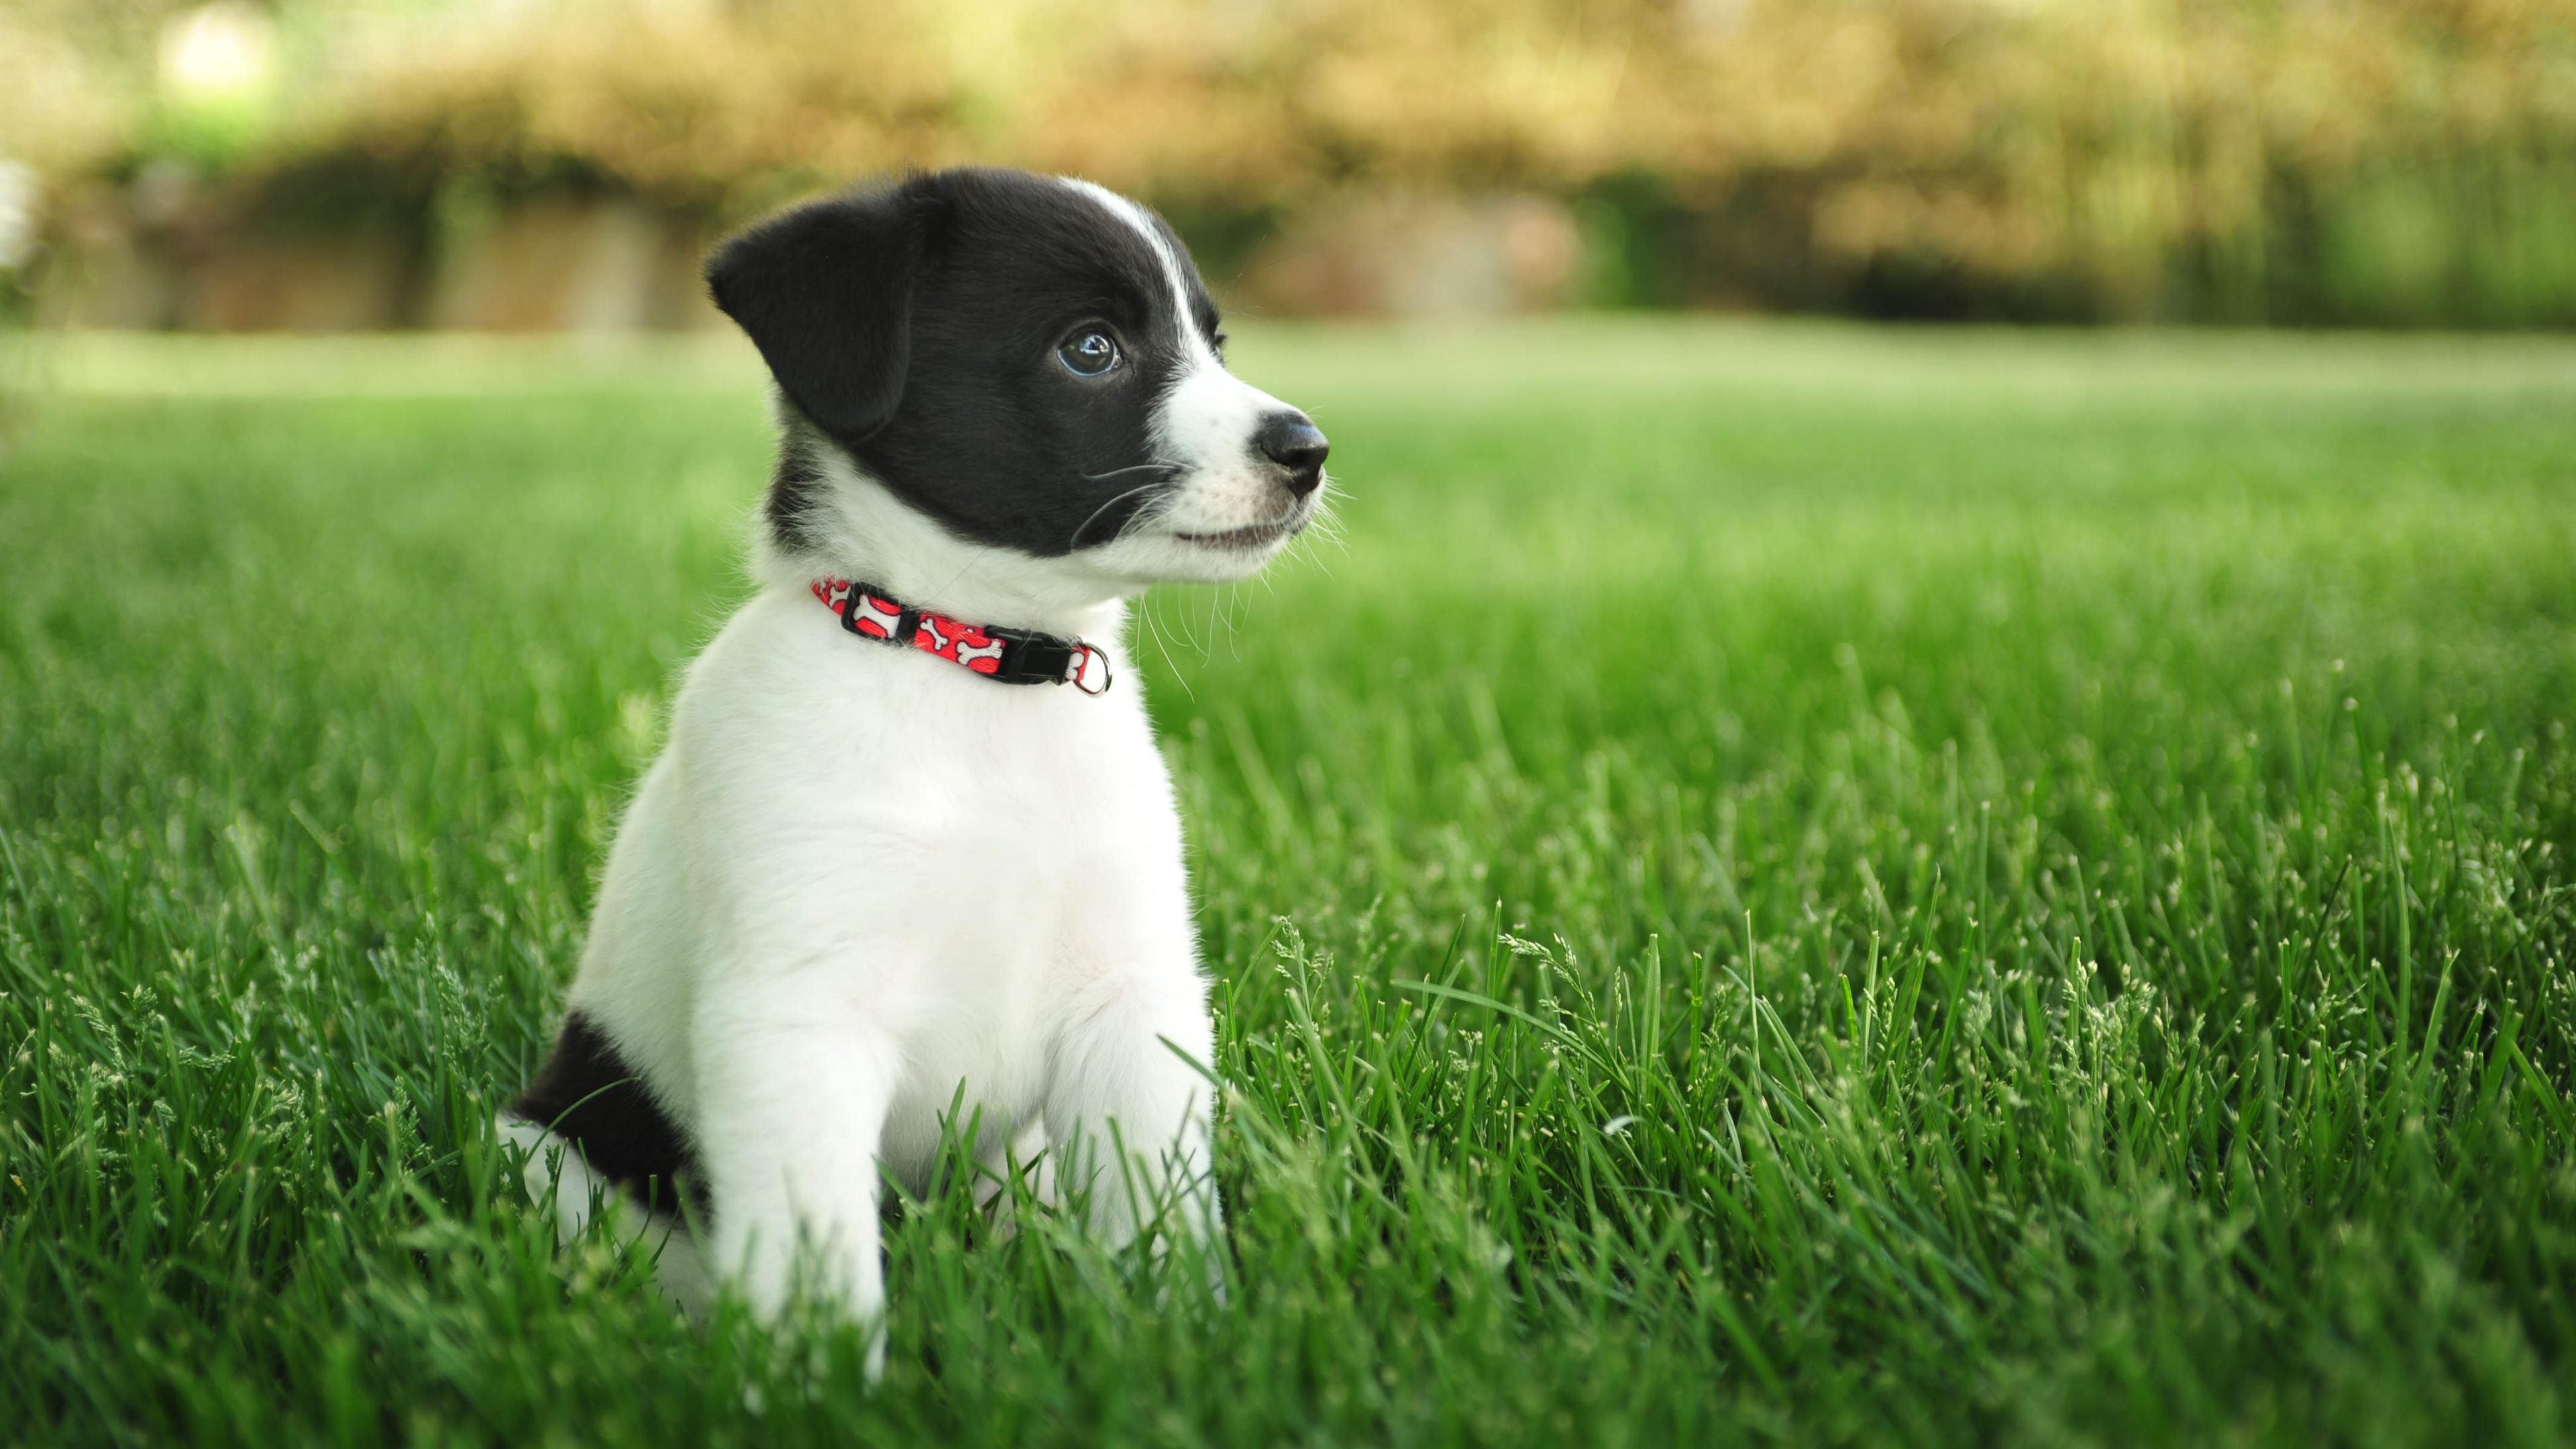 563 puppy hd wallpapers | background images - wallpaper abyss